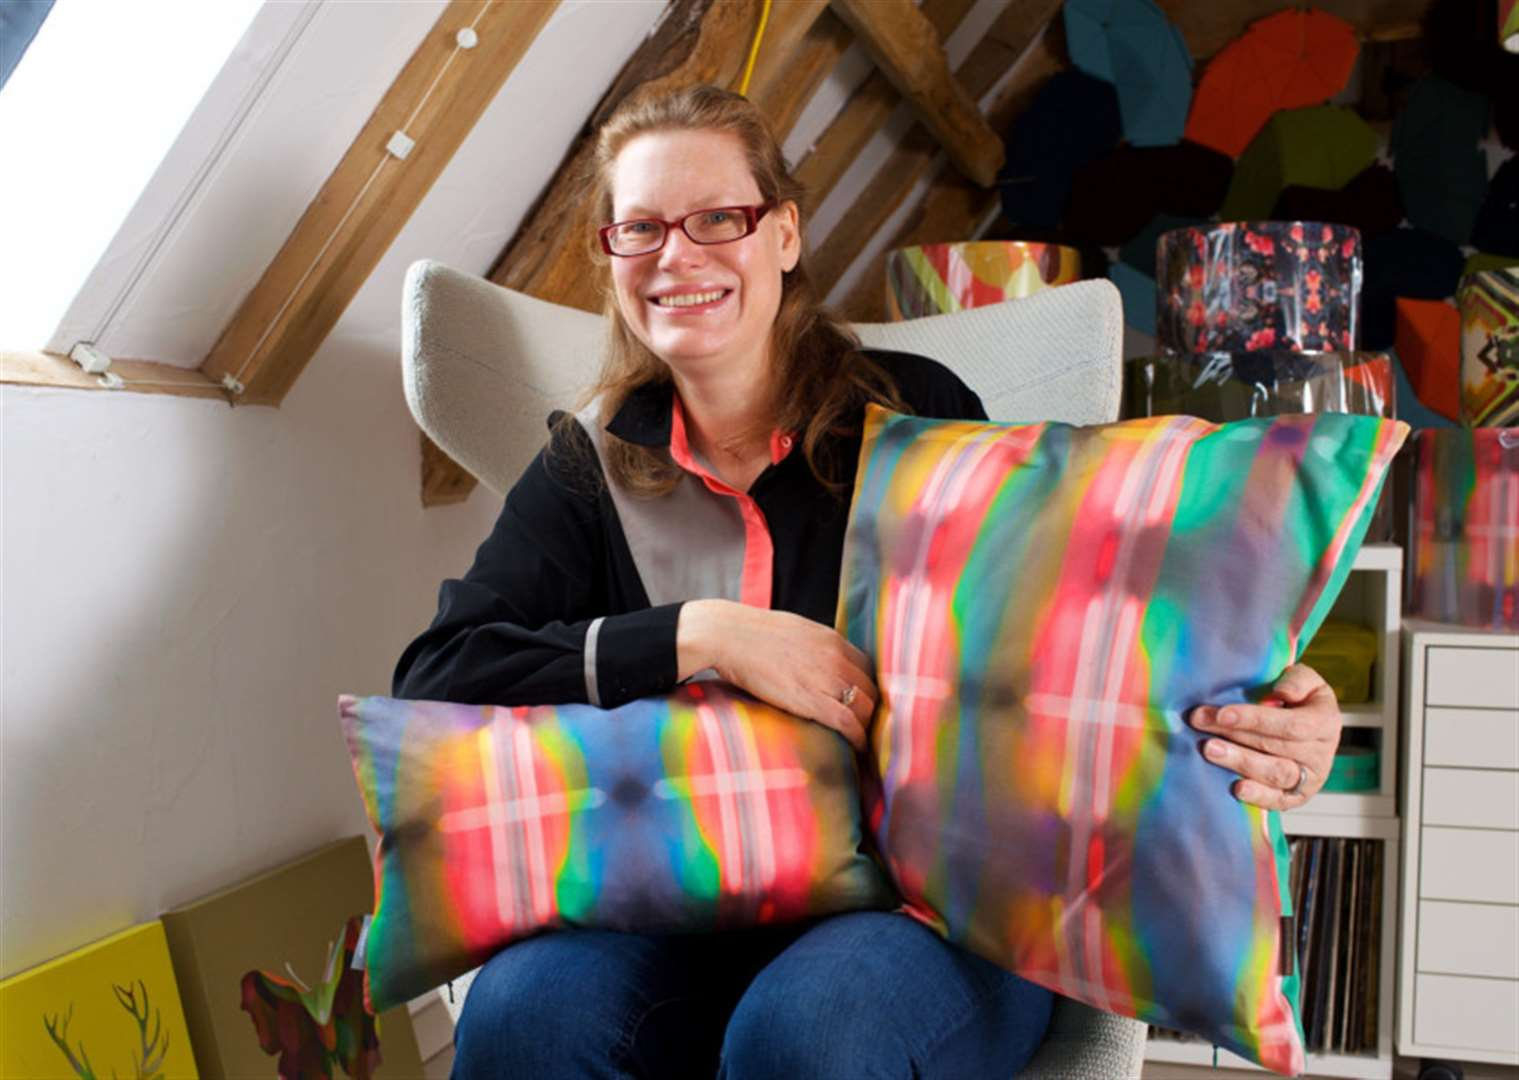 Mellis textile designs company chosen as the best of British